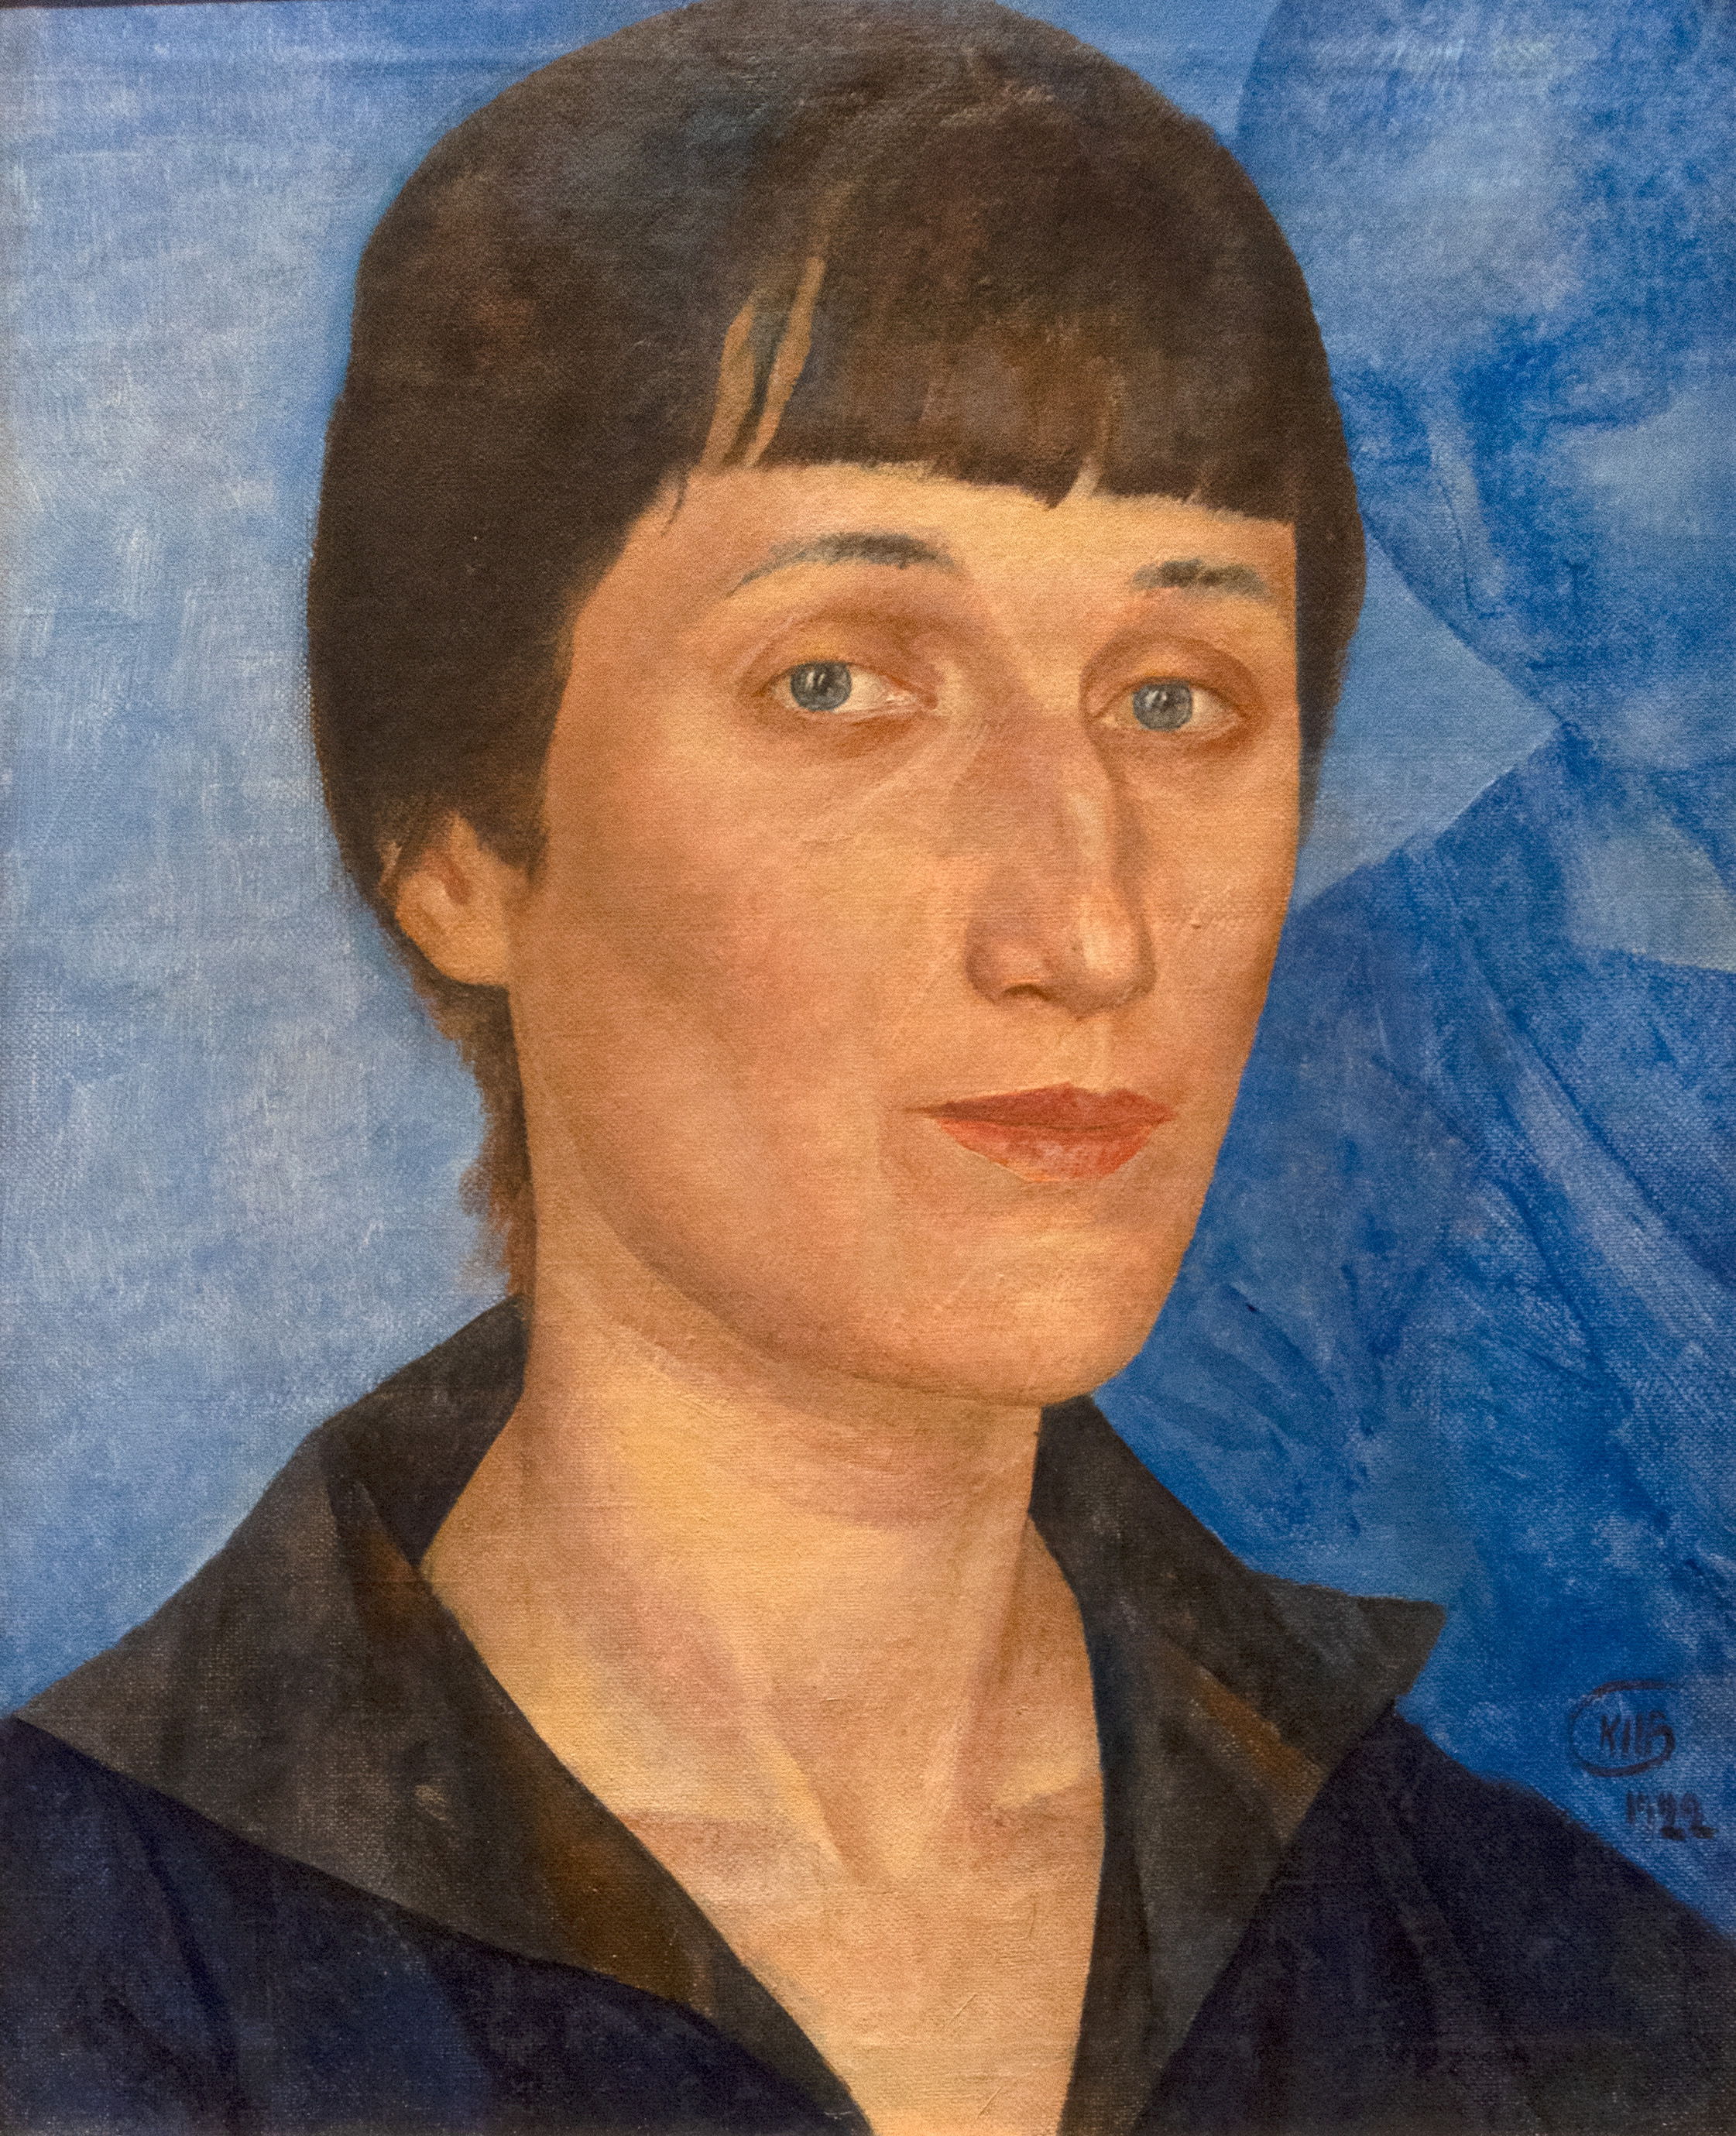 https://upload.wikimedia.org/wikipedia/commons/8/87/Kuzma_Petrov-Vodkin._Portrait_of_Anna_Akhmatova._1922.jpg